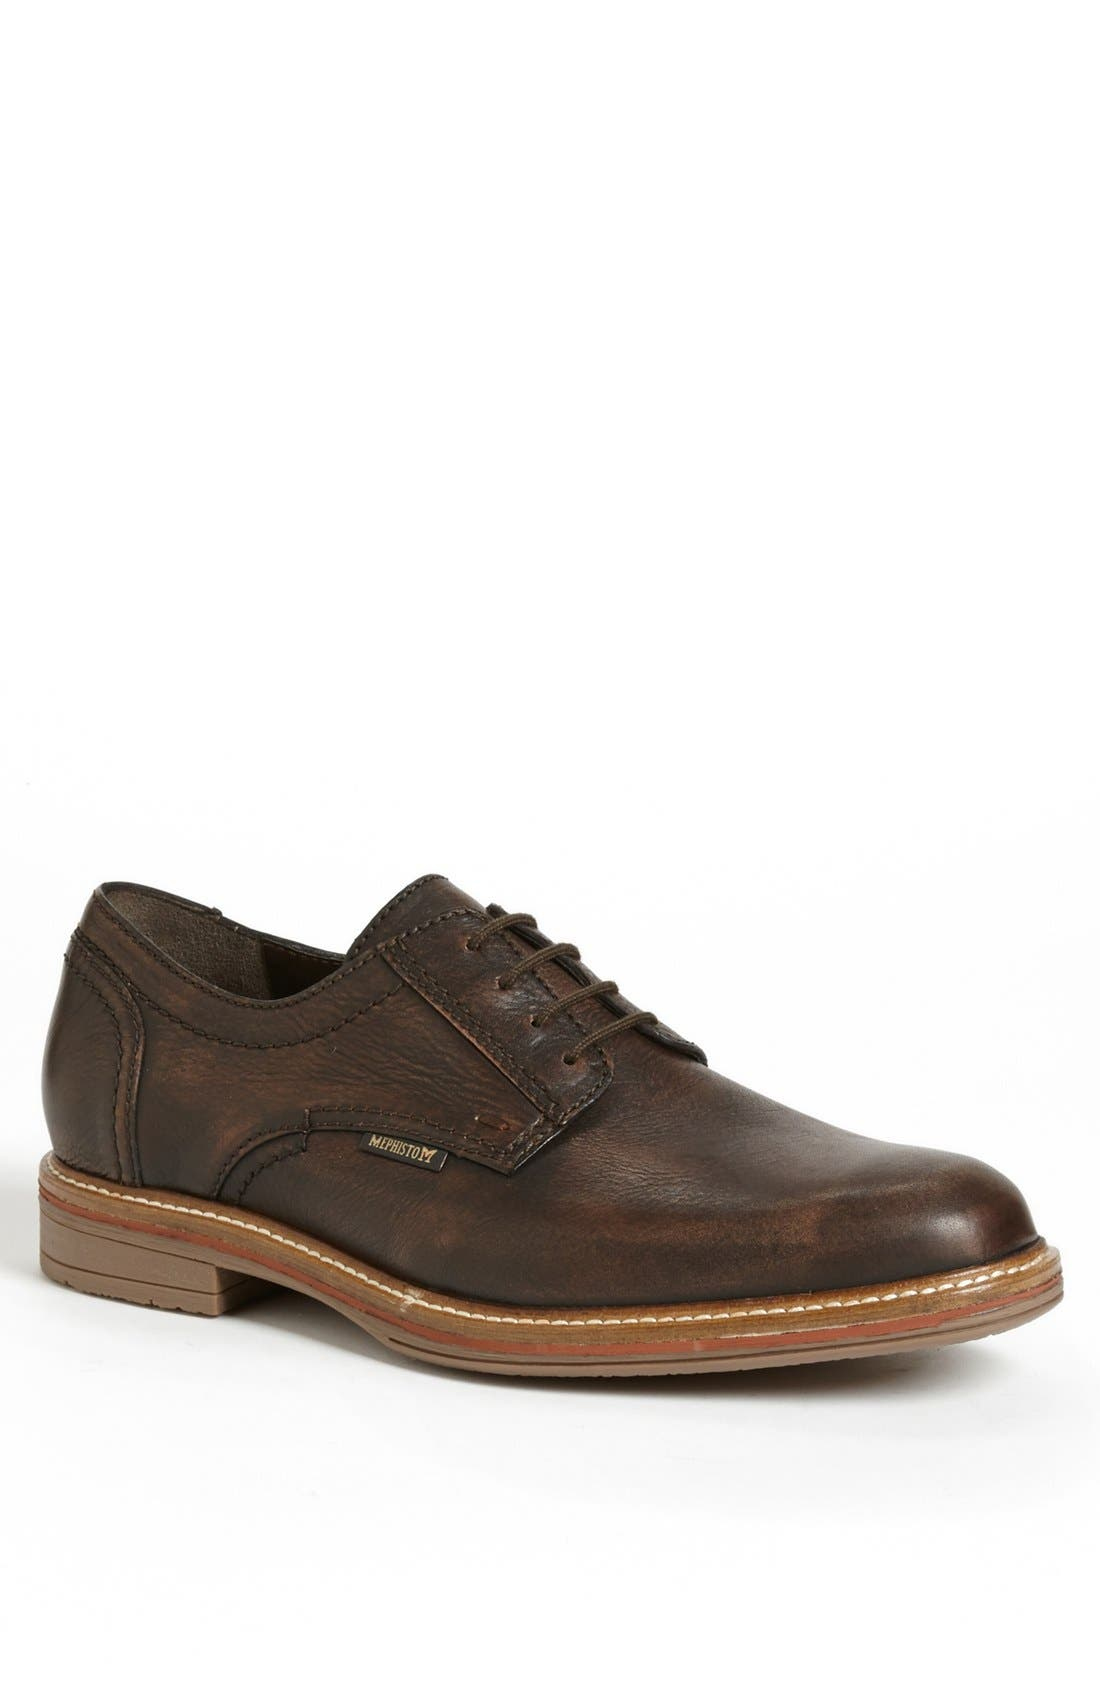 'Waino' Plain Toe Derby,                         Main,                         color, BROWN DISTRESSED LEATHER